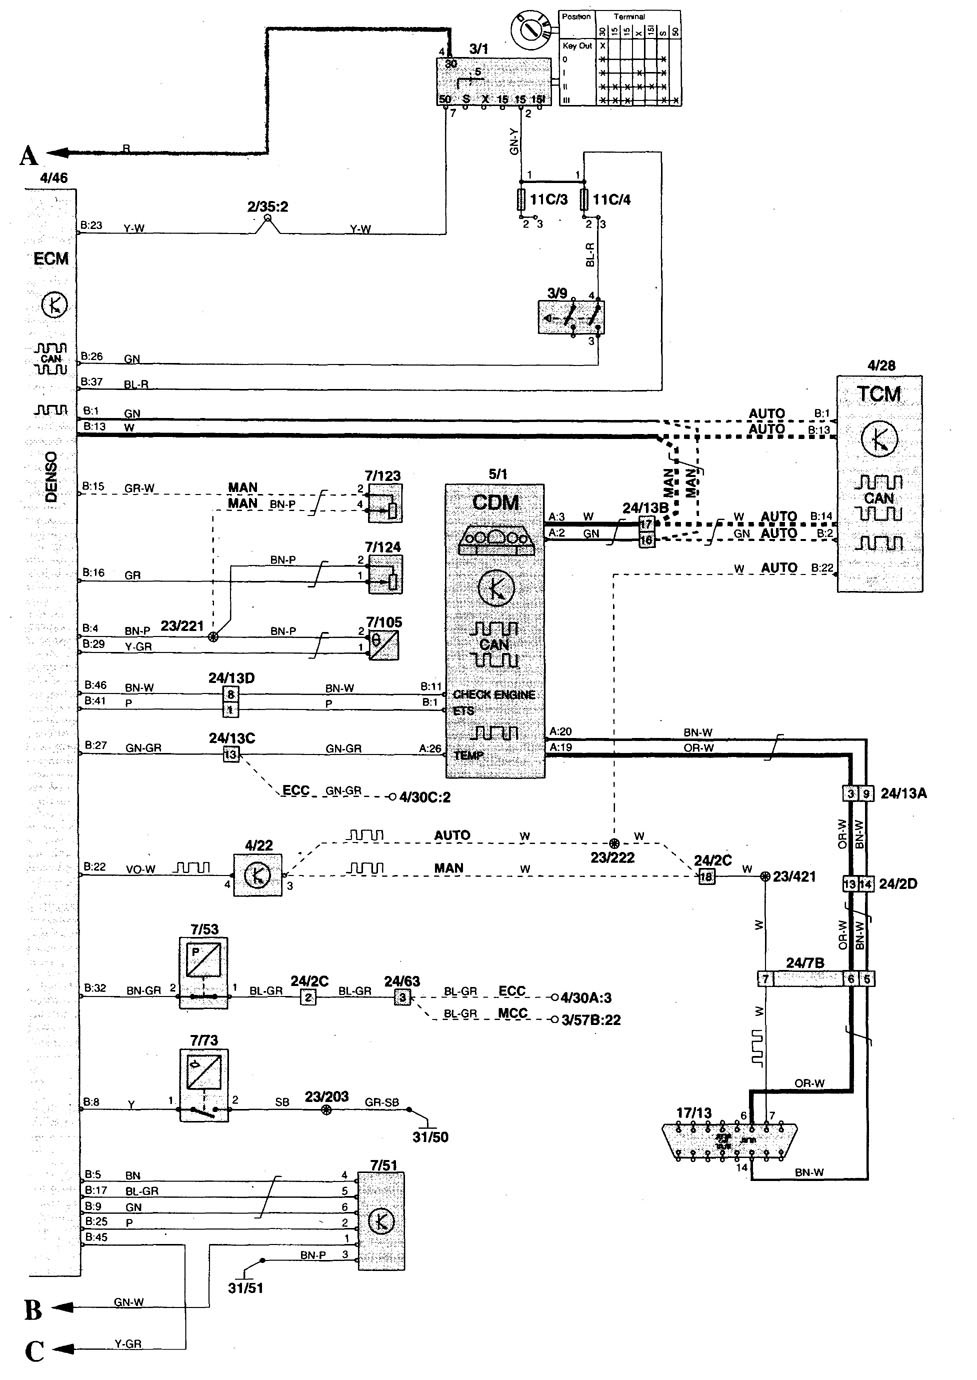 volvo c70 wiring diagram fuel pump 4 1999 volvo c70 (1999 2004) wiring diagrams fuel pump carknowledge 1999 volvo c70 wiring diagram at bayanpartner.co